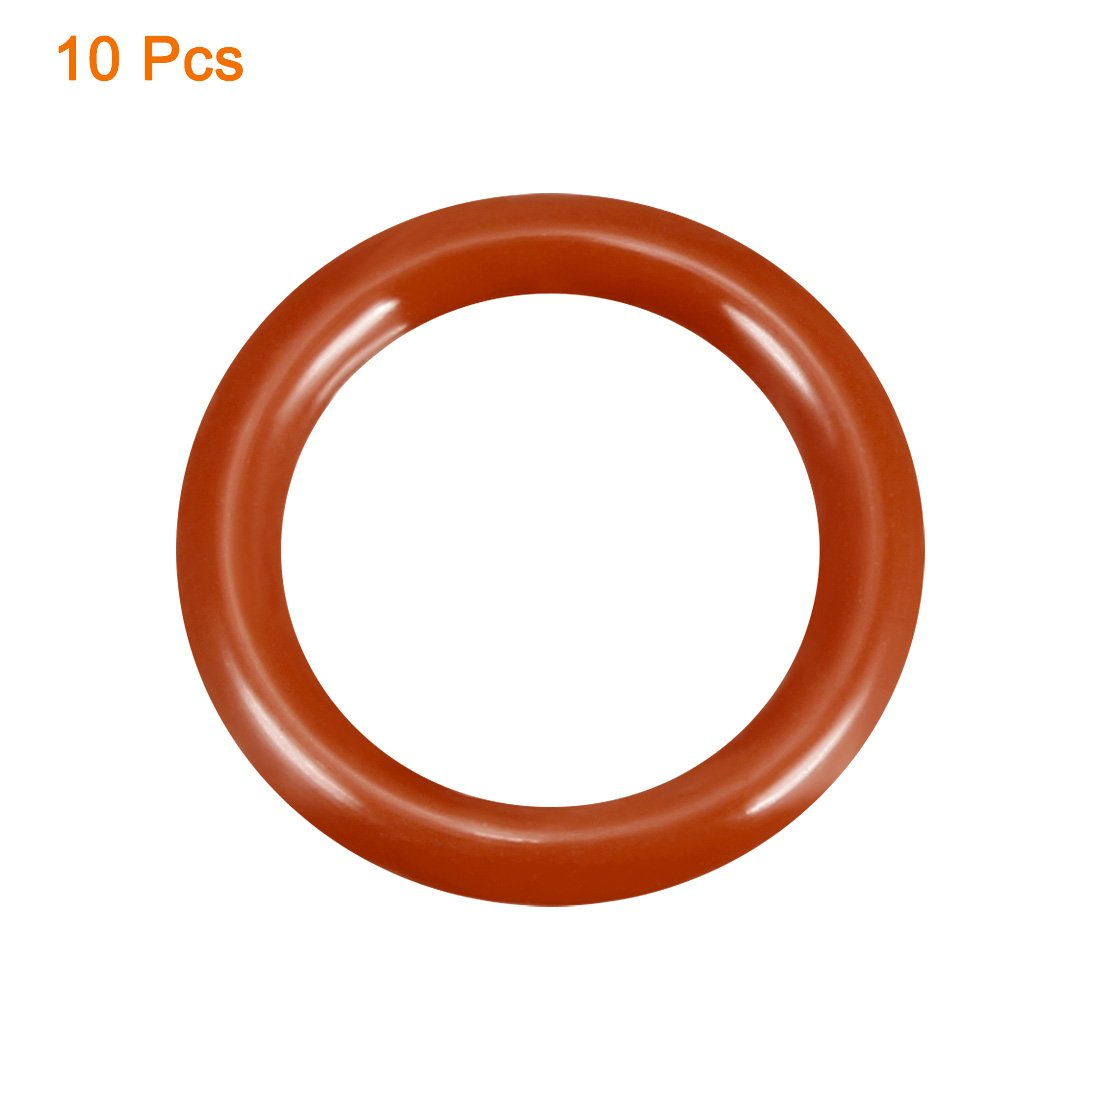 50 Pcs 12mm x 2.5mm x 7mm Dark Red Silicone O Rings Oil Seal Washers Gasket